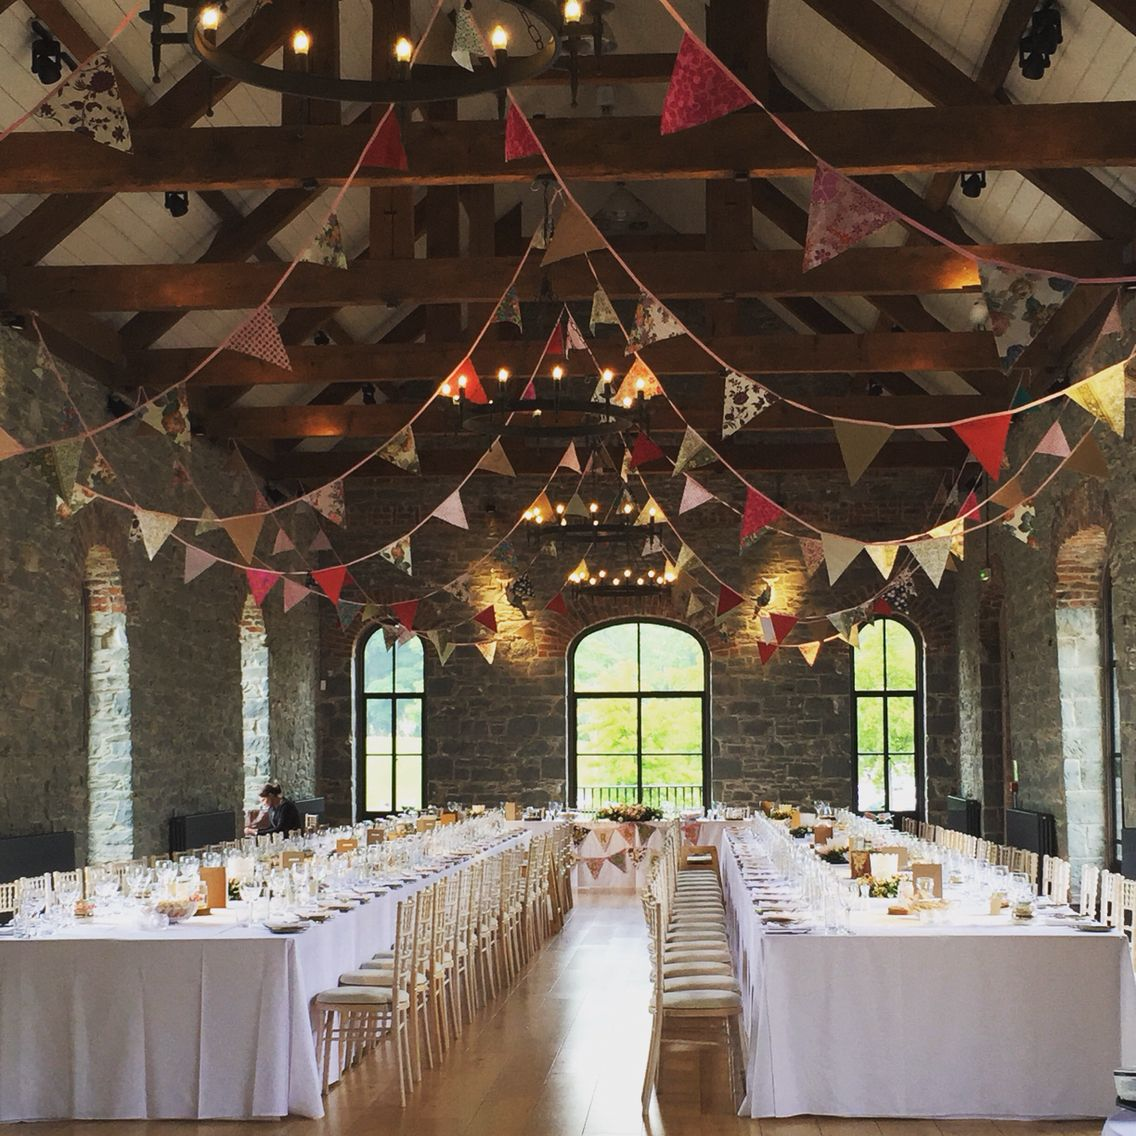 Wedding Reception Goals The Carriage Rooms At Montalto Northern